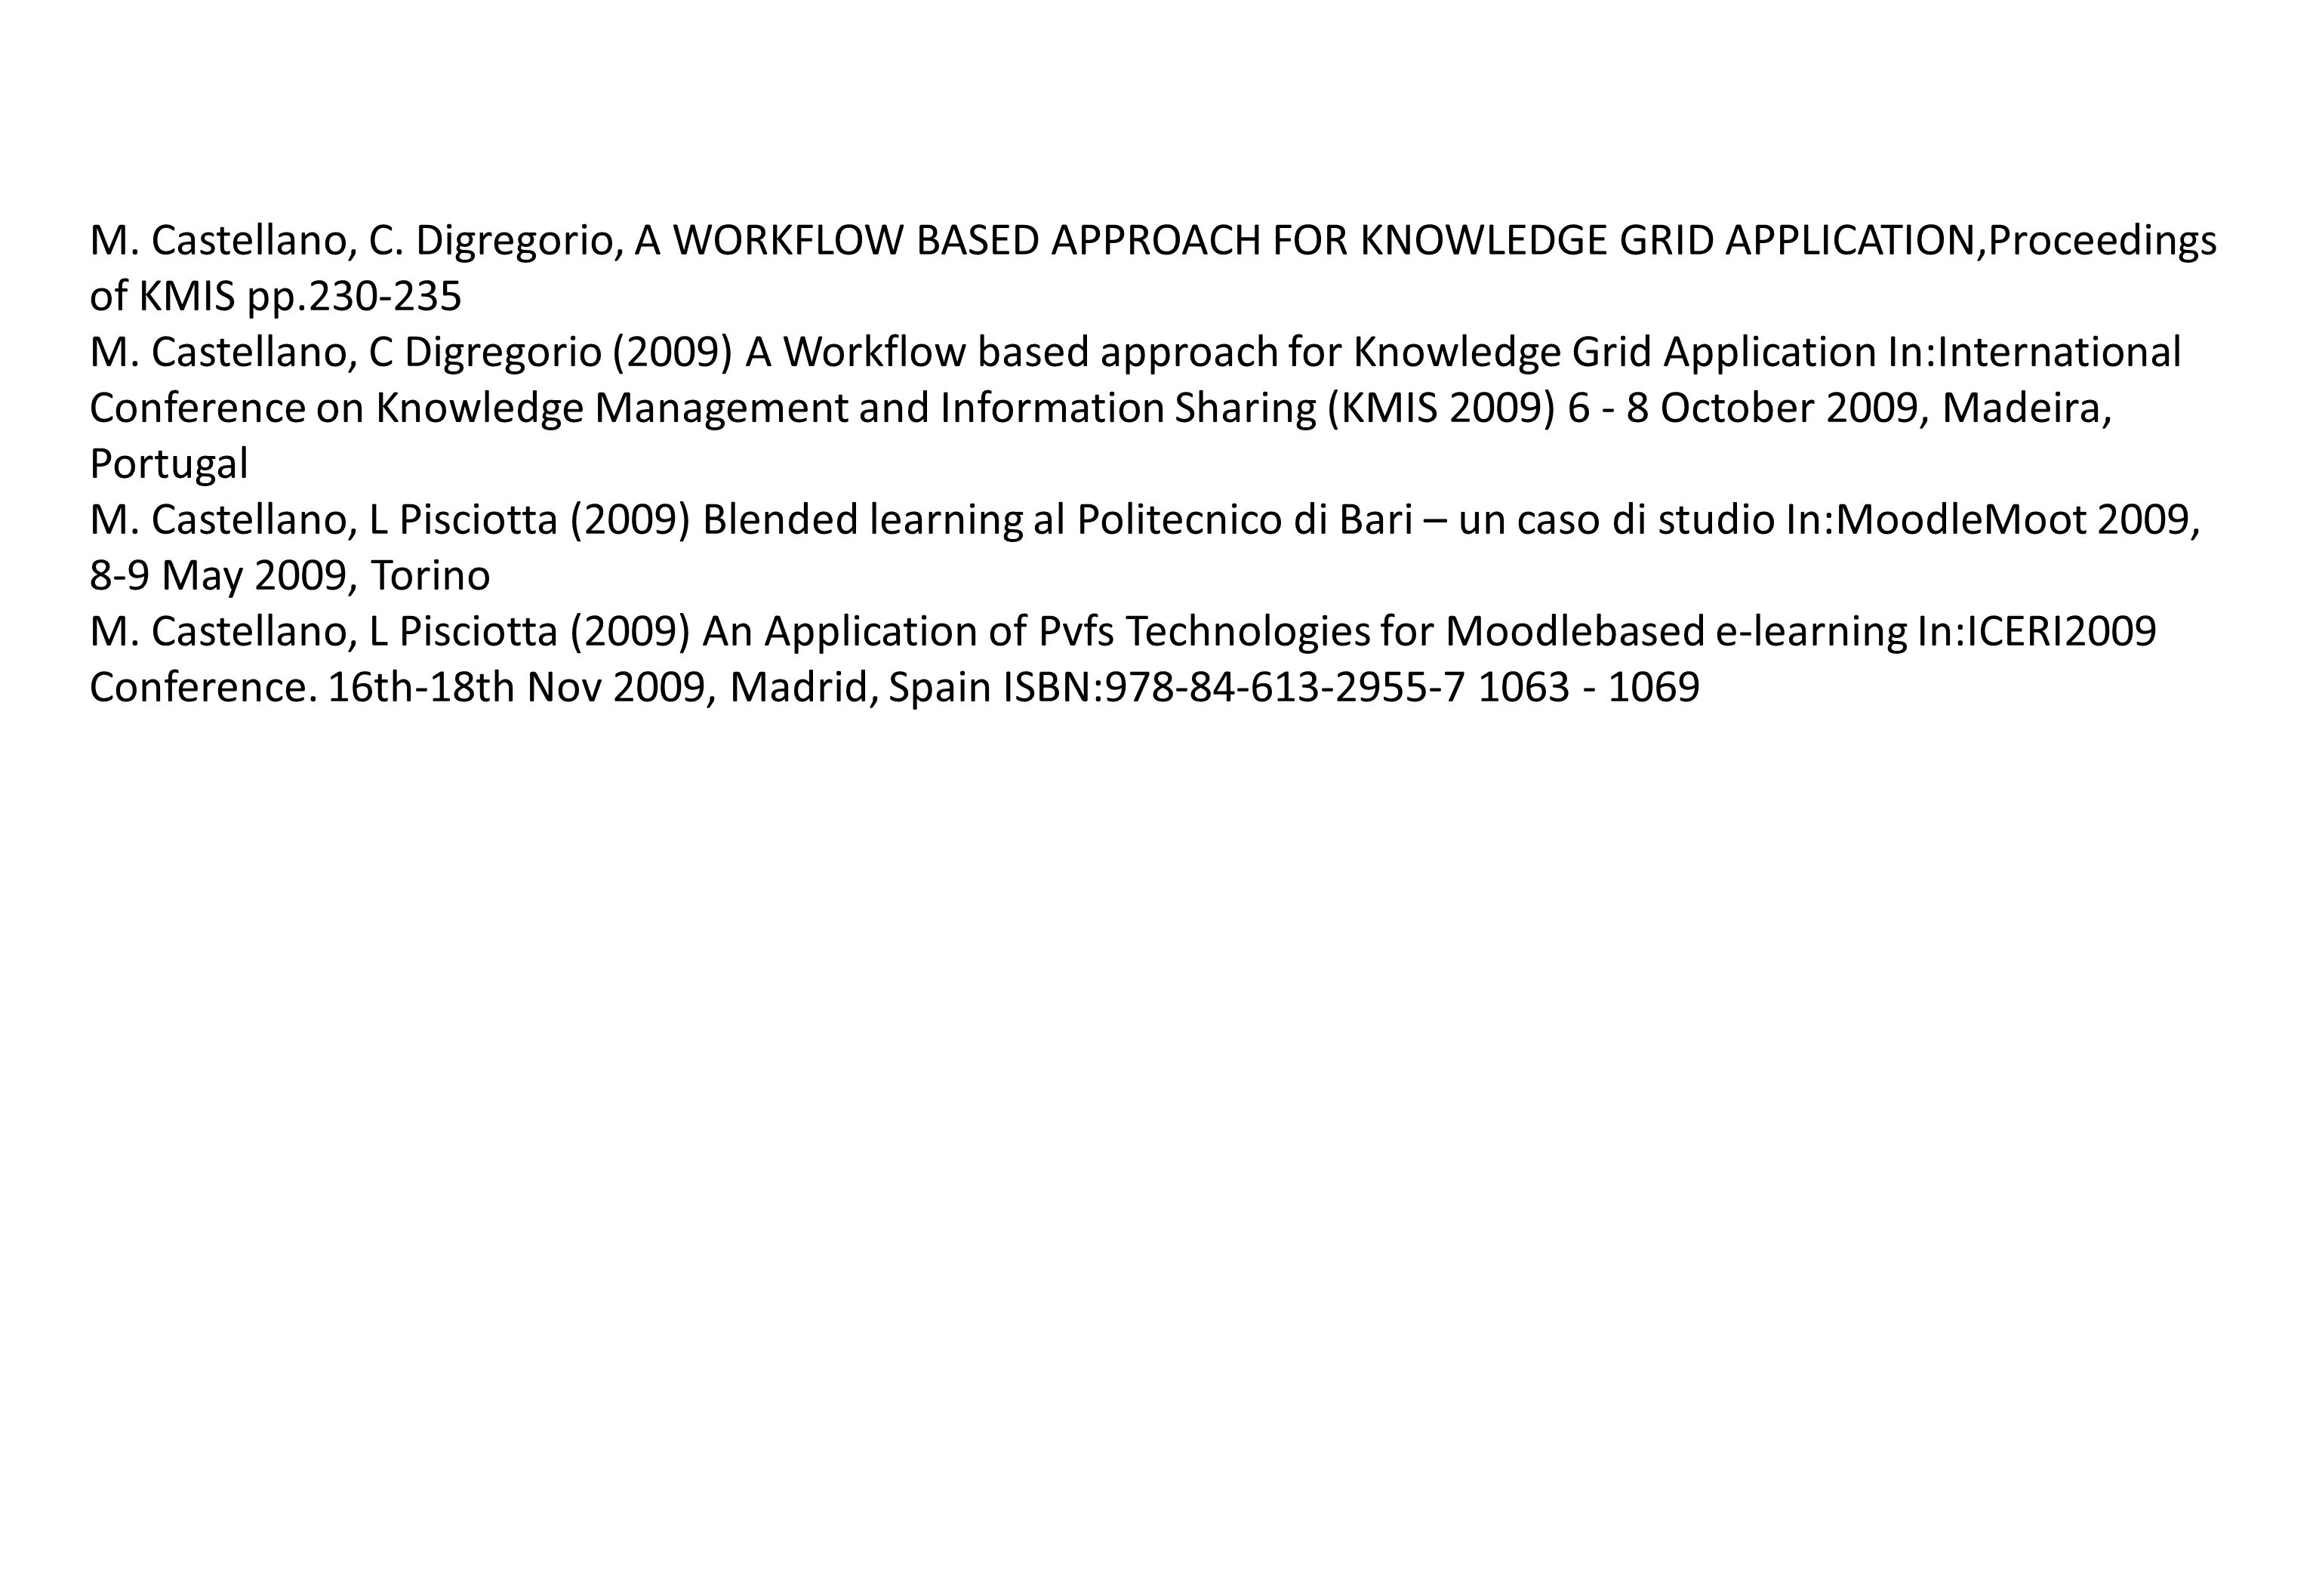 M. Castellano, C. Digregorio, A WORKFLOW BASED APPROACH FOR KNOWLEDGE GRID APPLICATION,Proceedings of KMIS pp.230-235